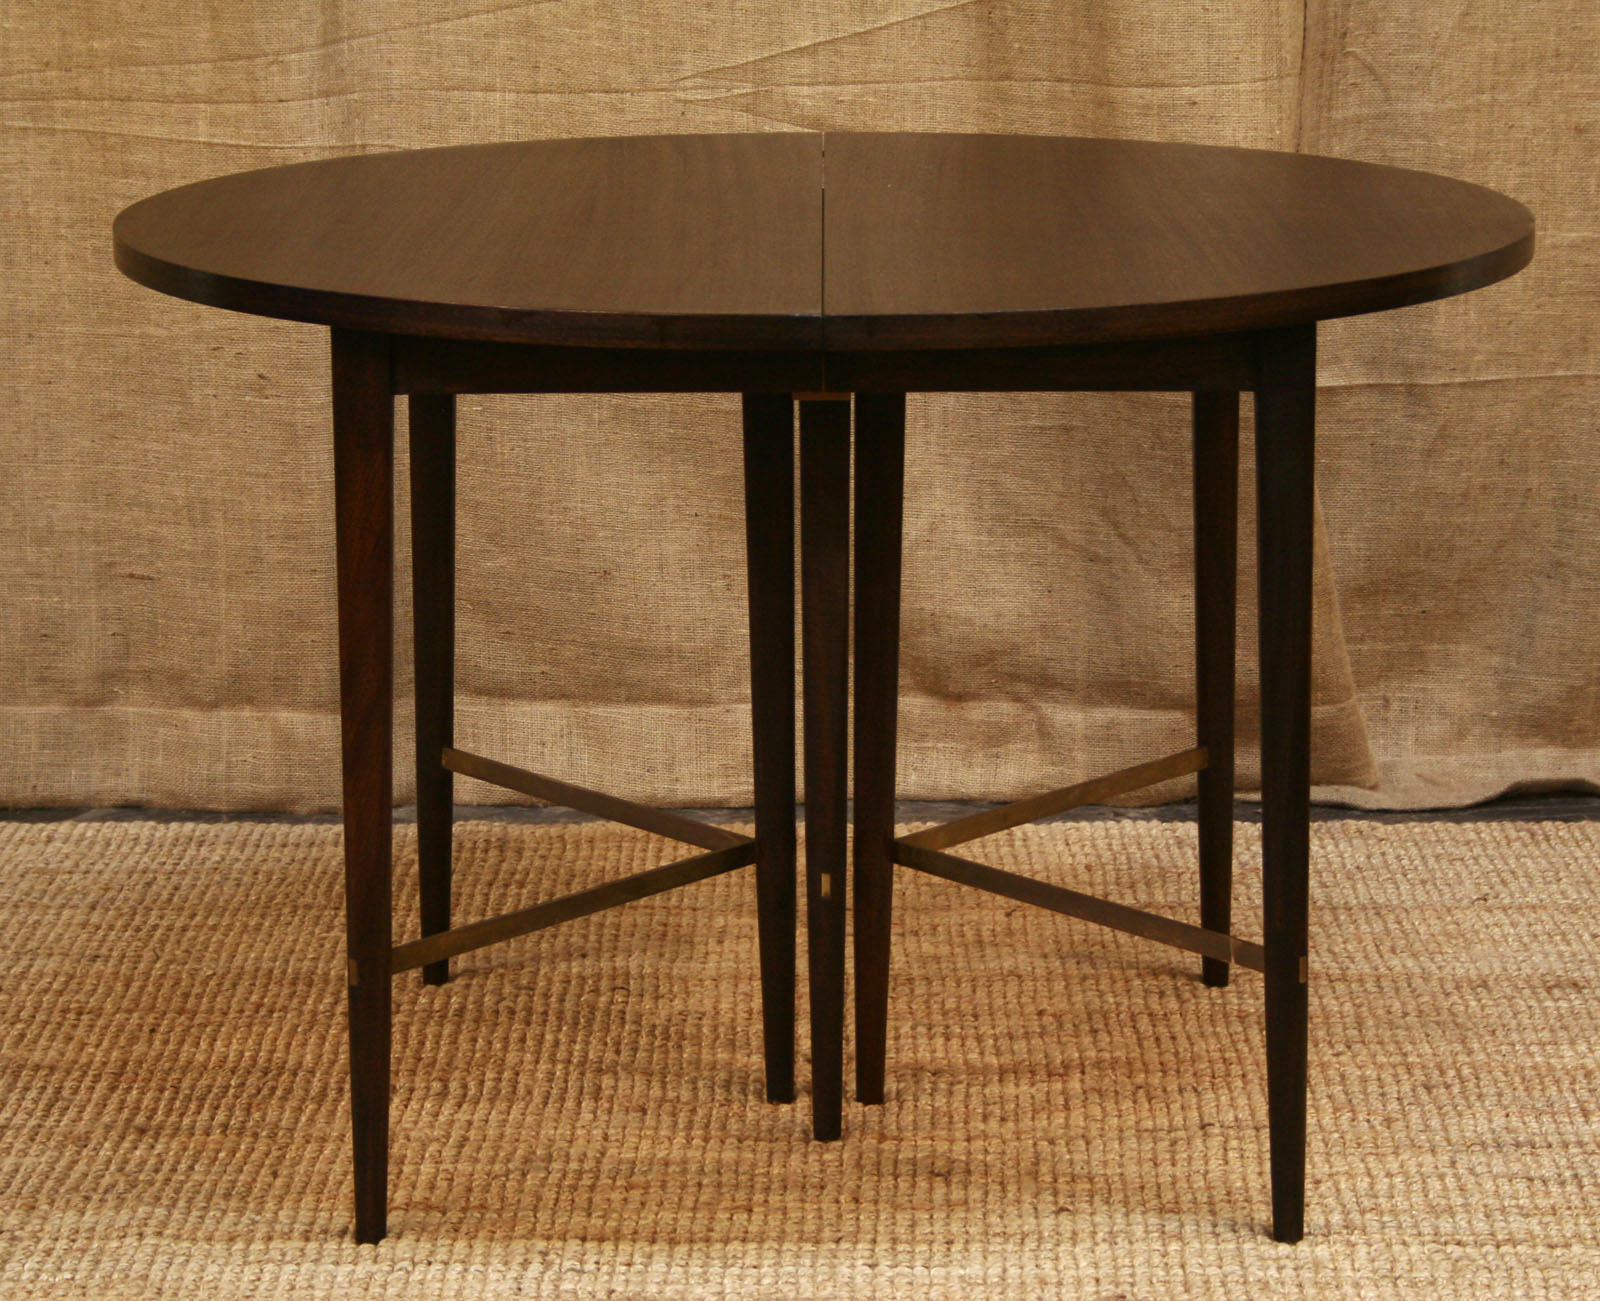 This dining table by Paul